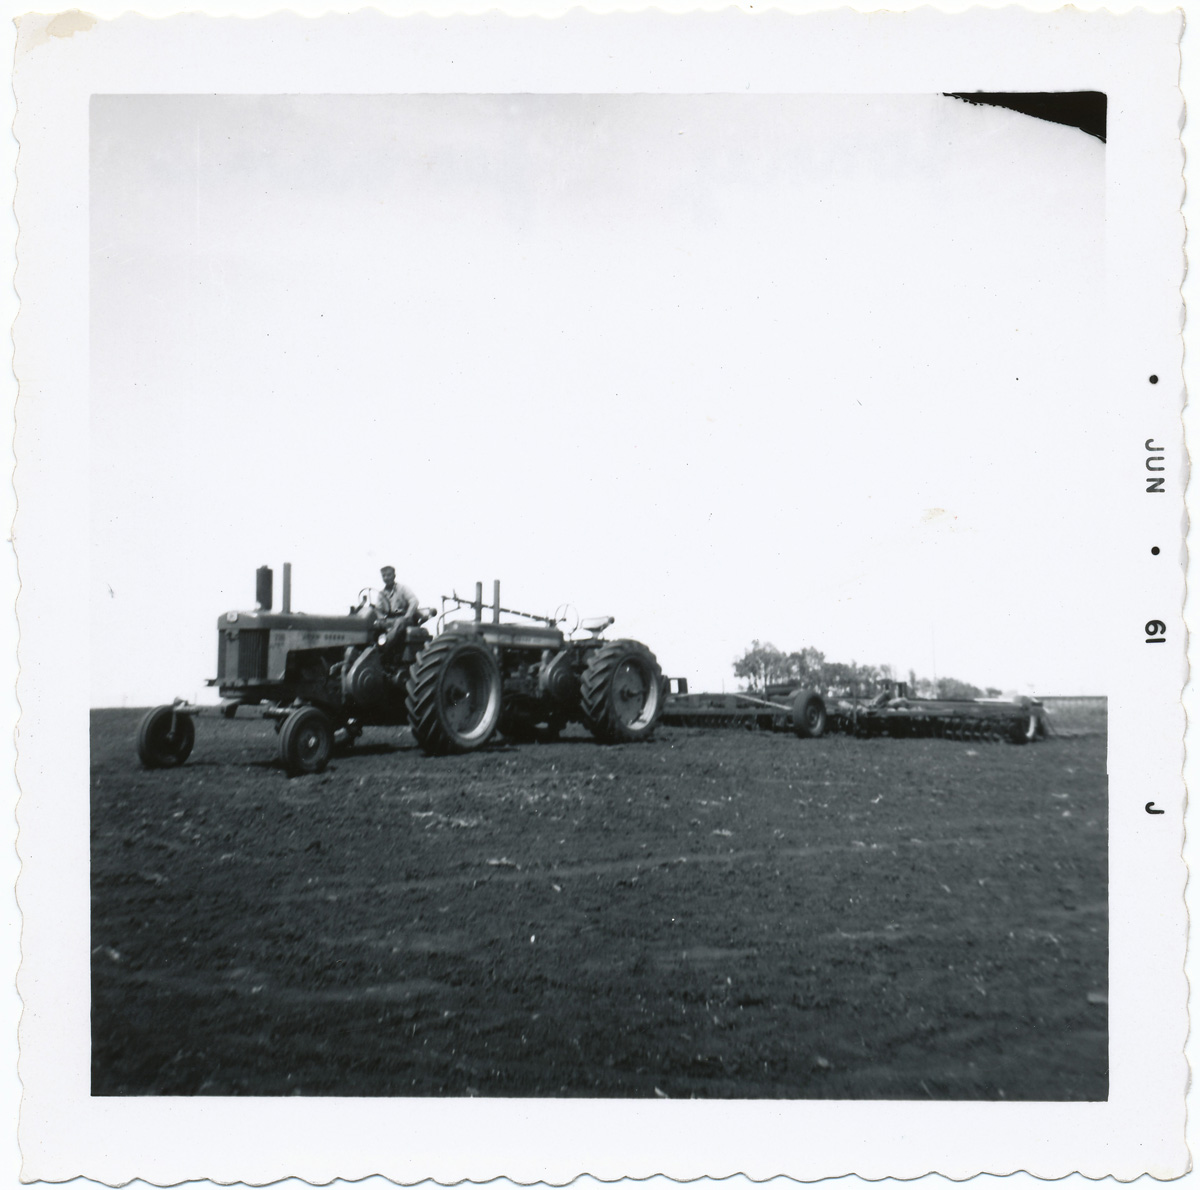 Tractors Hooked Together : Deane gunderson marion art and the farmer s